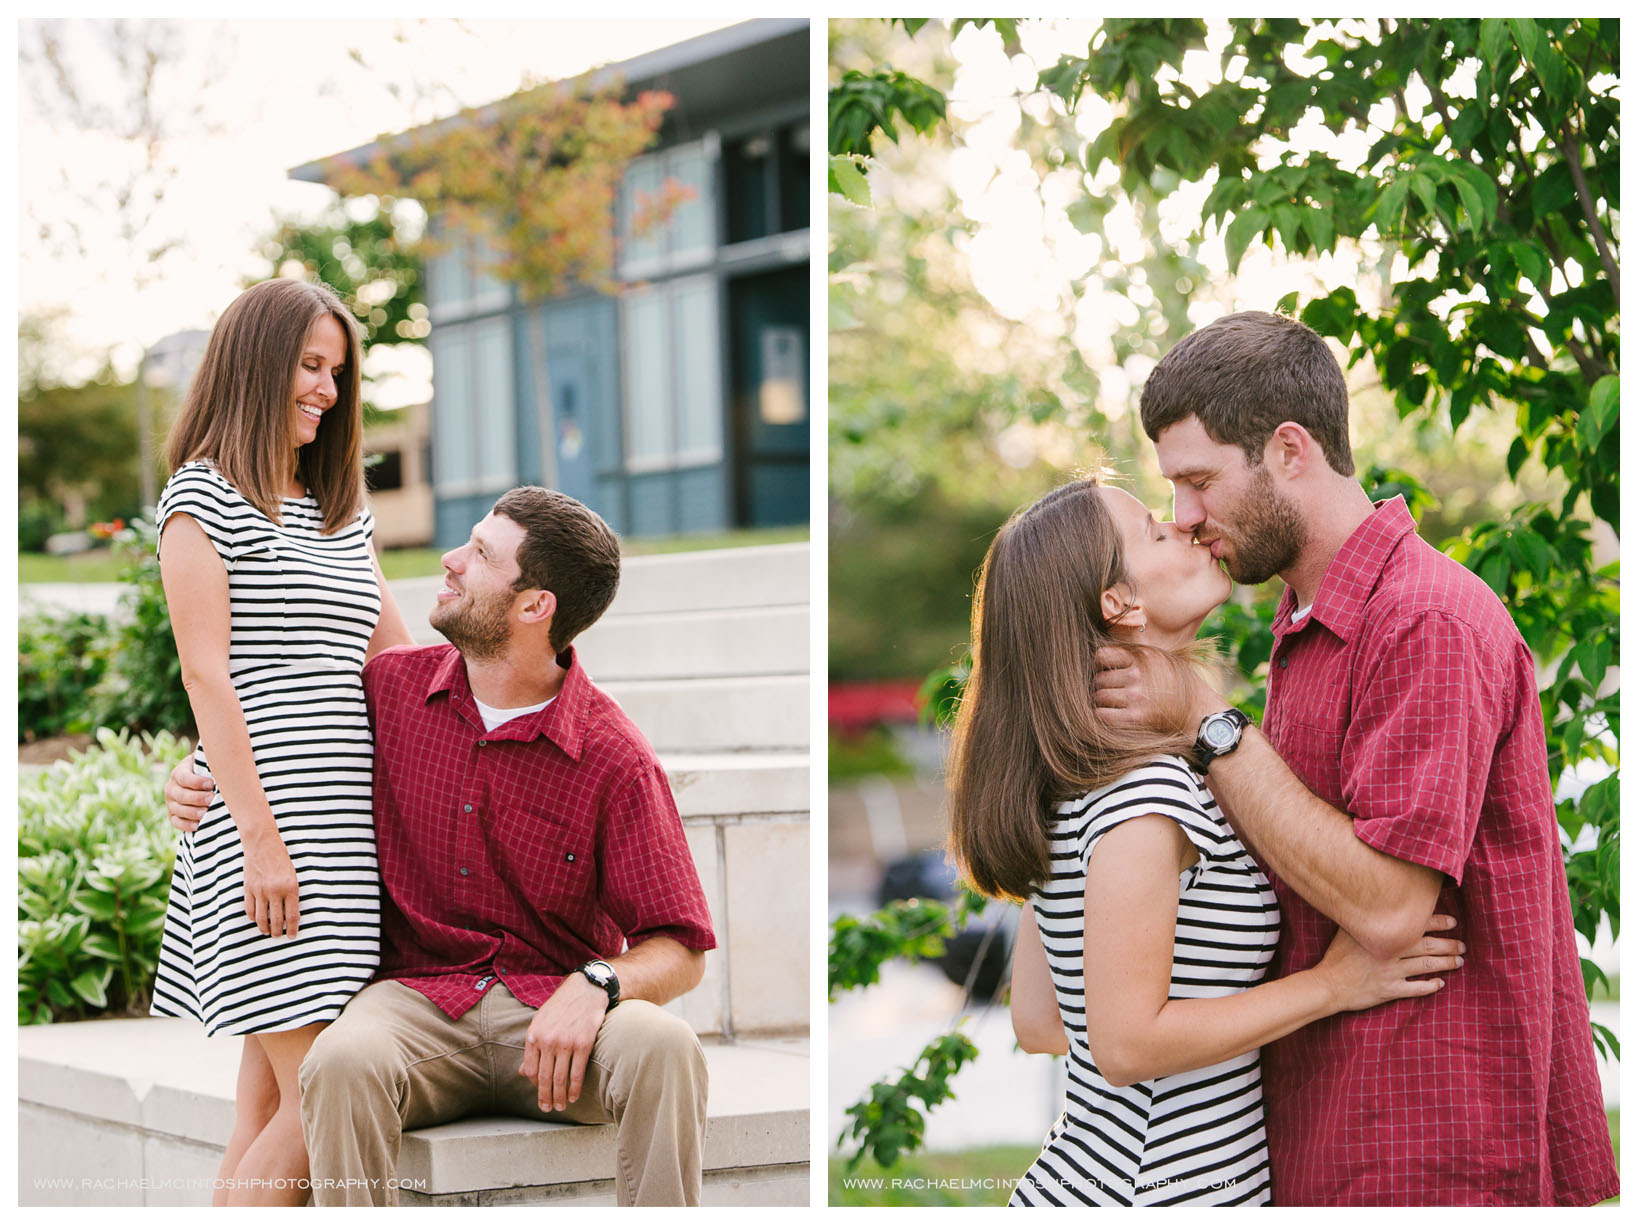 Down Town Asheville Engagement Session- Asheville Wedding Photography-22.jpg